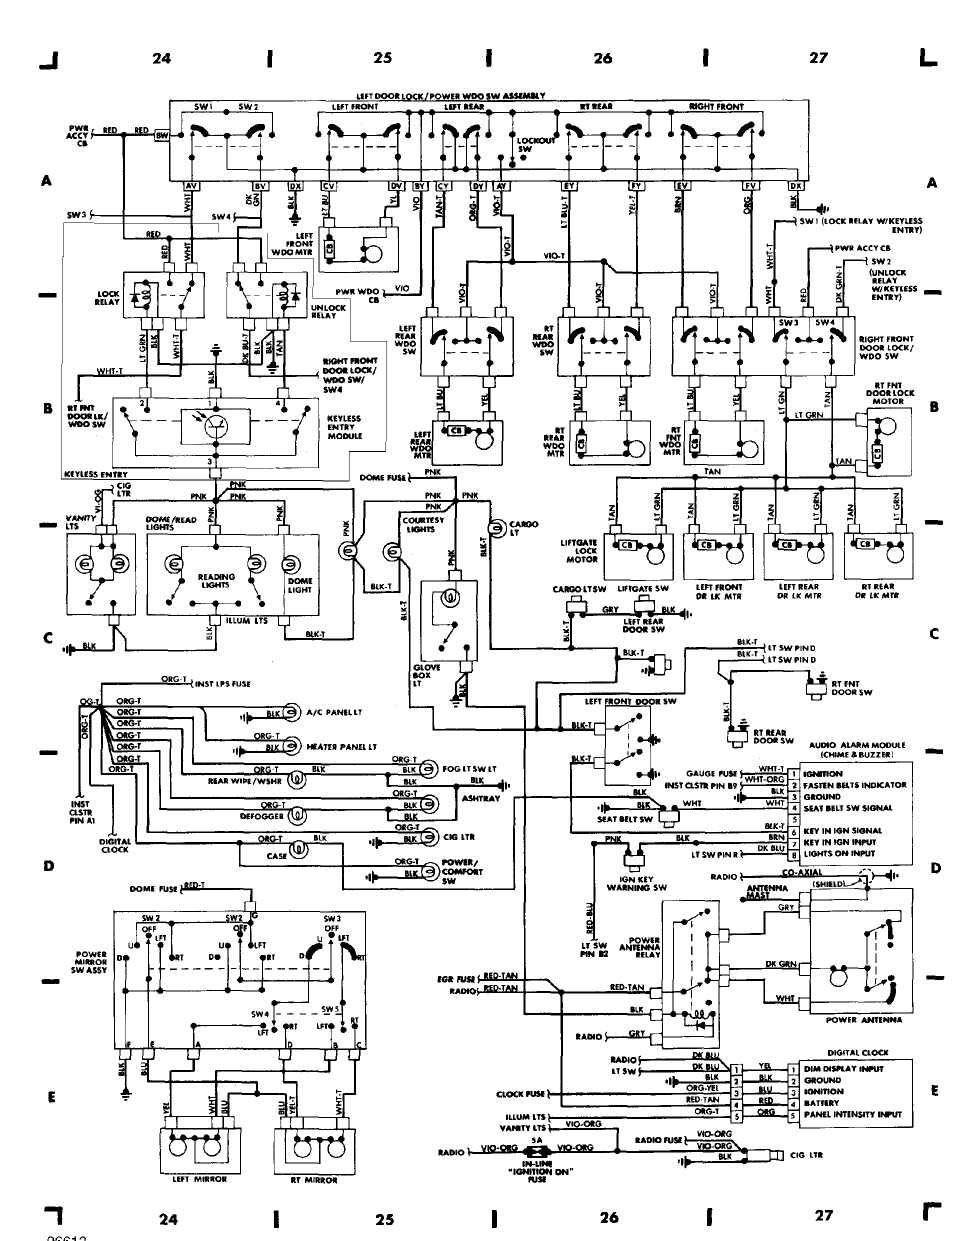 wiring_diagrams_html_61f5e0ad wiring diagrams 1984 1991 jeep cherokee (xj) jeep 89 jeep cherokee wiring diagram at gsmportal.co